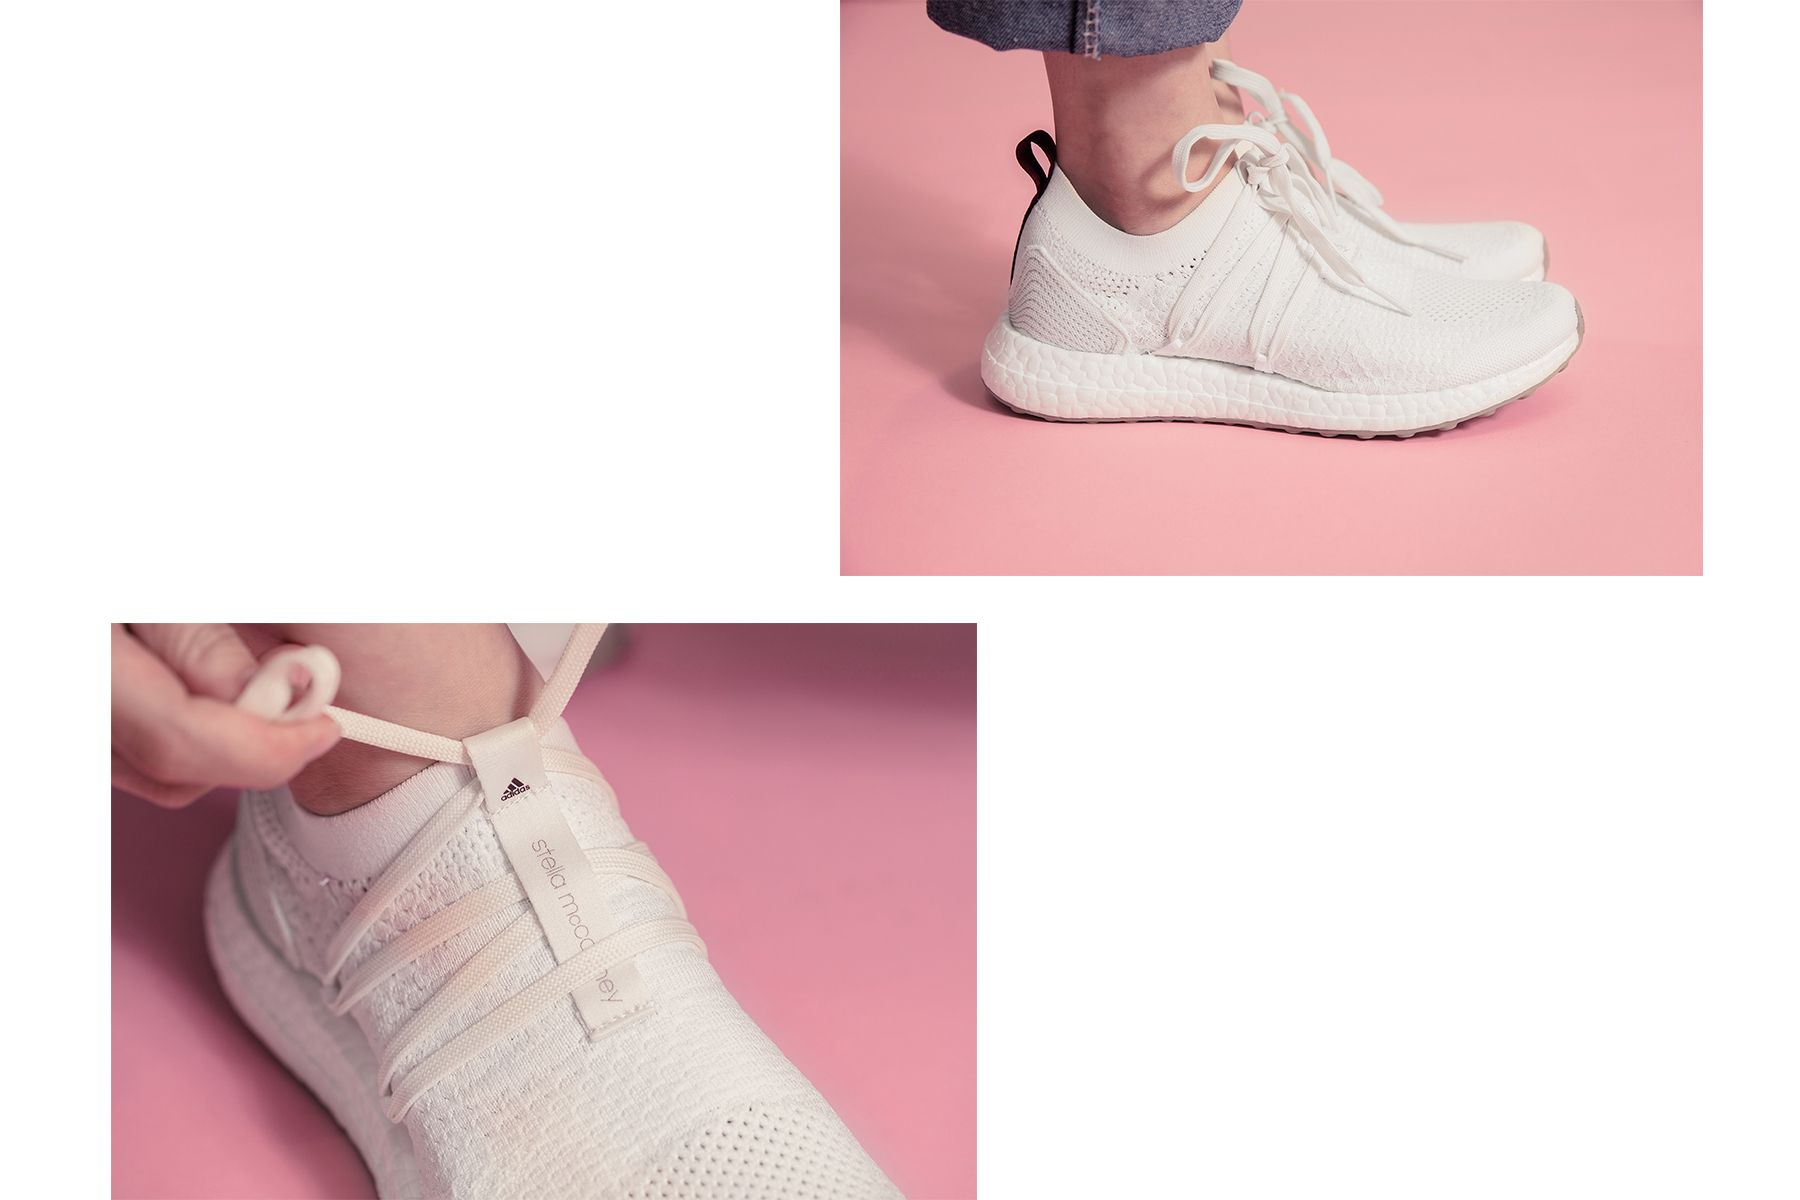 00698a104bd adidas by Stella McCartney Unveils the New Parley UltraBOOST X ...